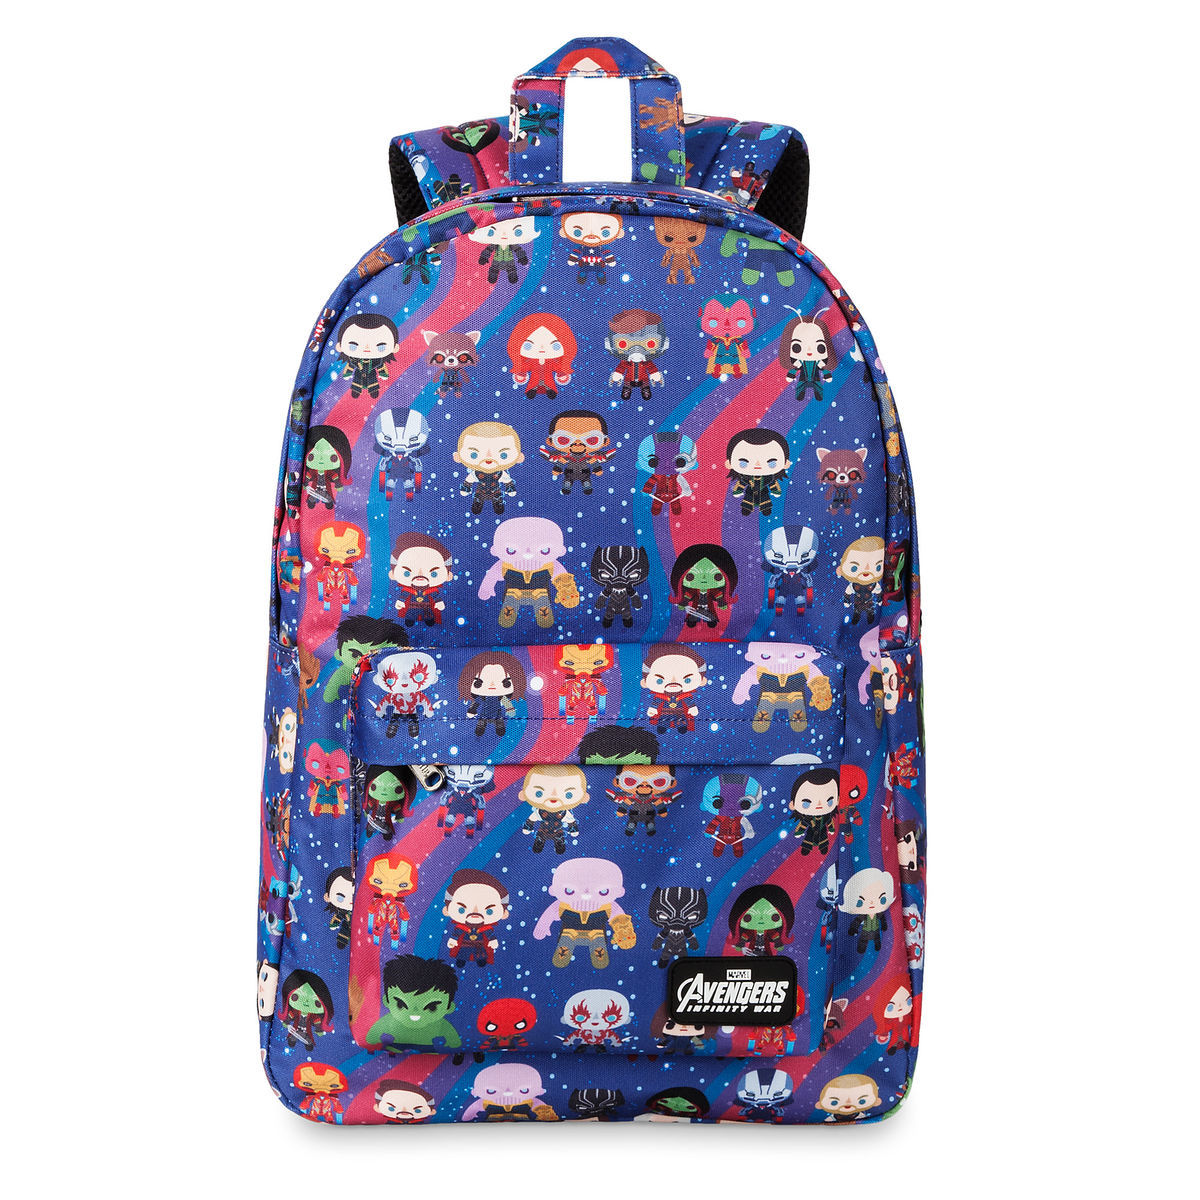 Product Image of Marvel s Avengers  Infinity War Backpack by Loungefly   1 e4b9544a5ae13